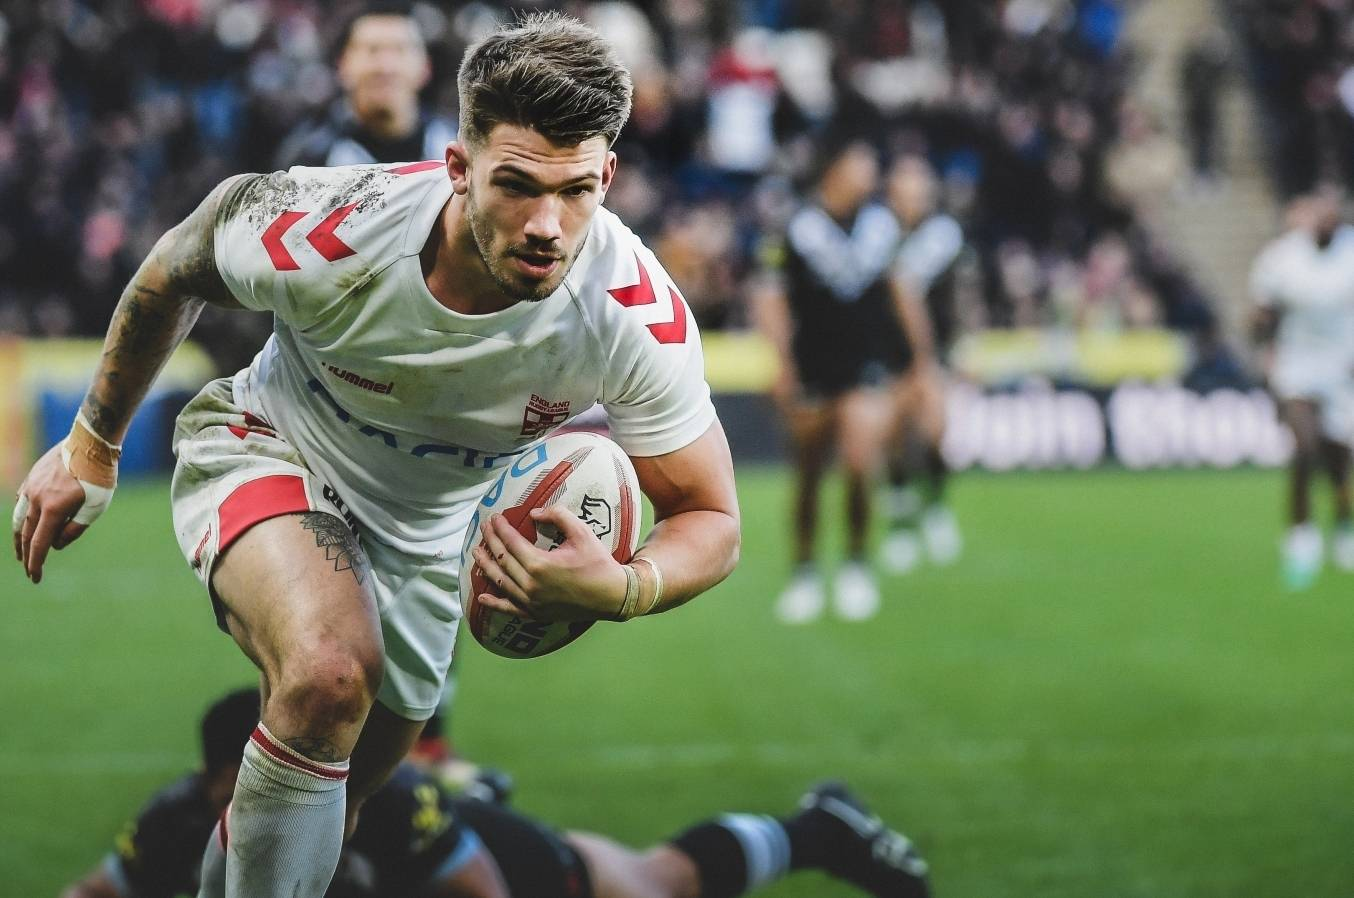 The Players' Record: Oliver Gildart